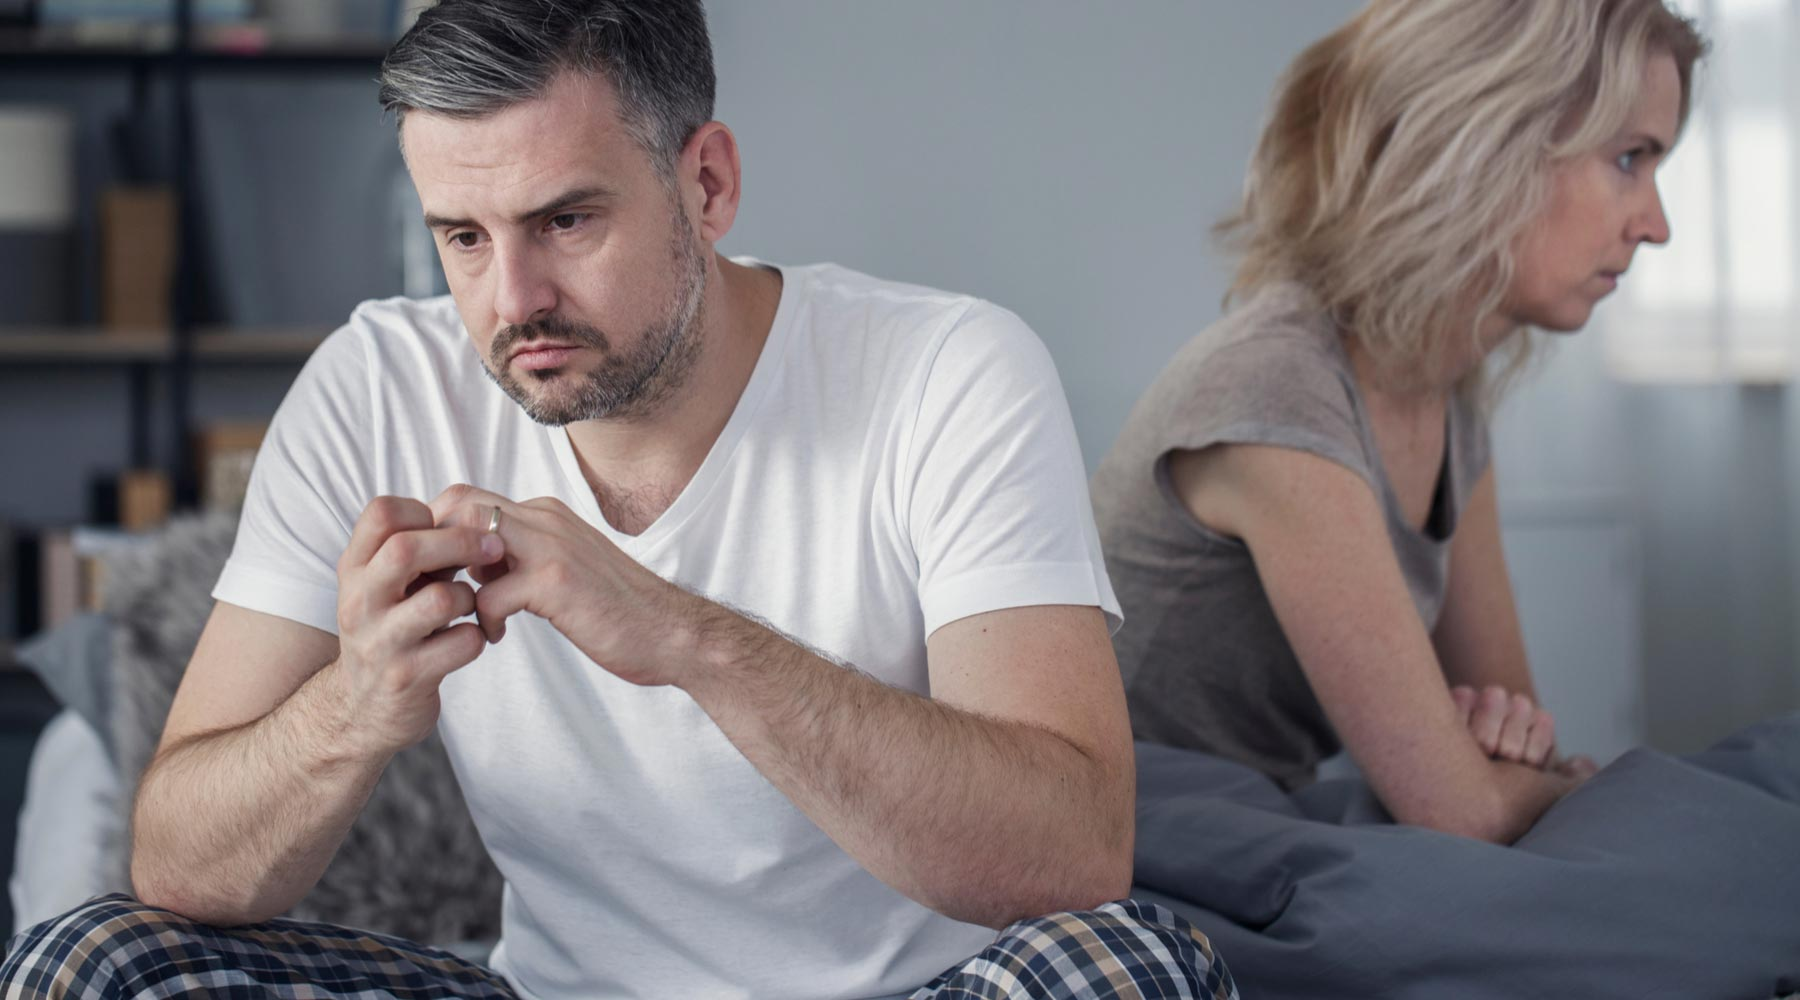 Managing Finances During a Divorce